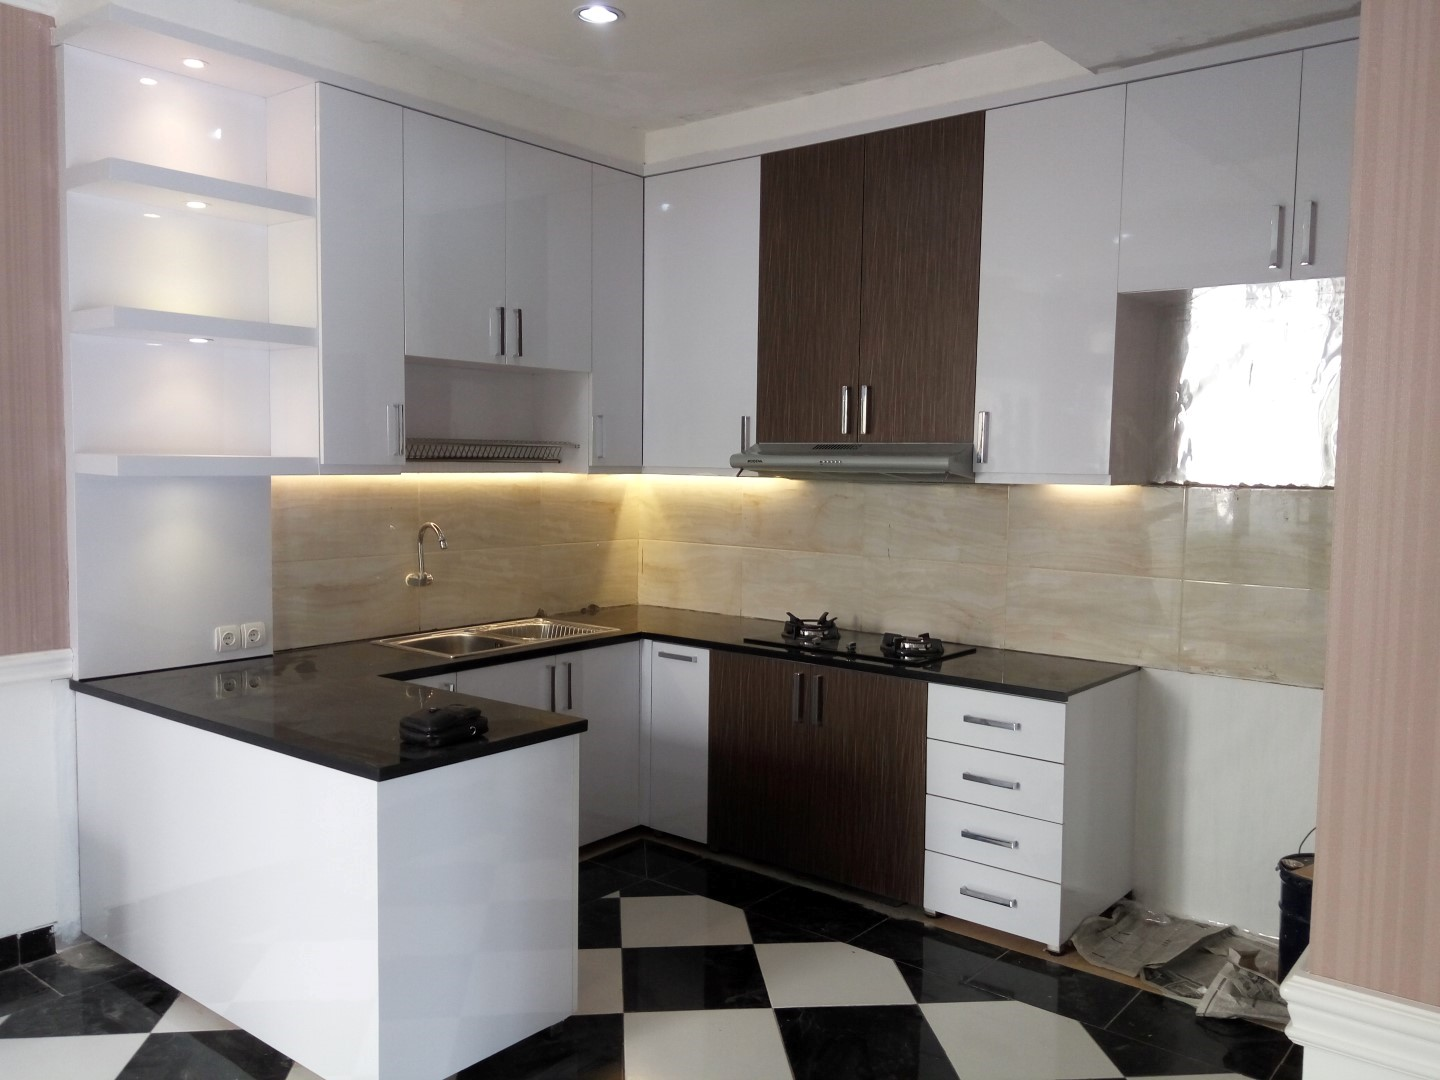 Model Kitchen Set Minimalis Modern Harga Murah Terbaru